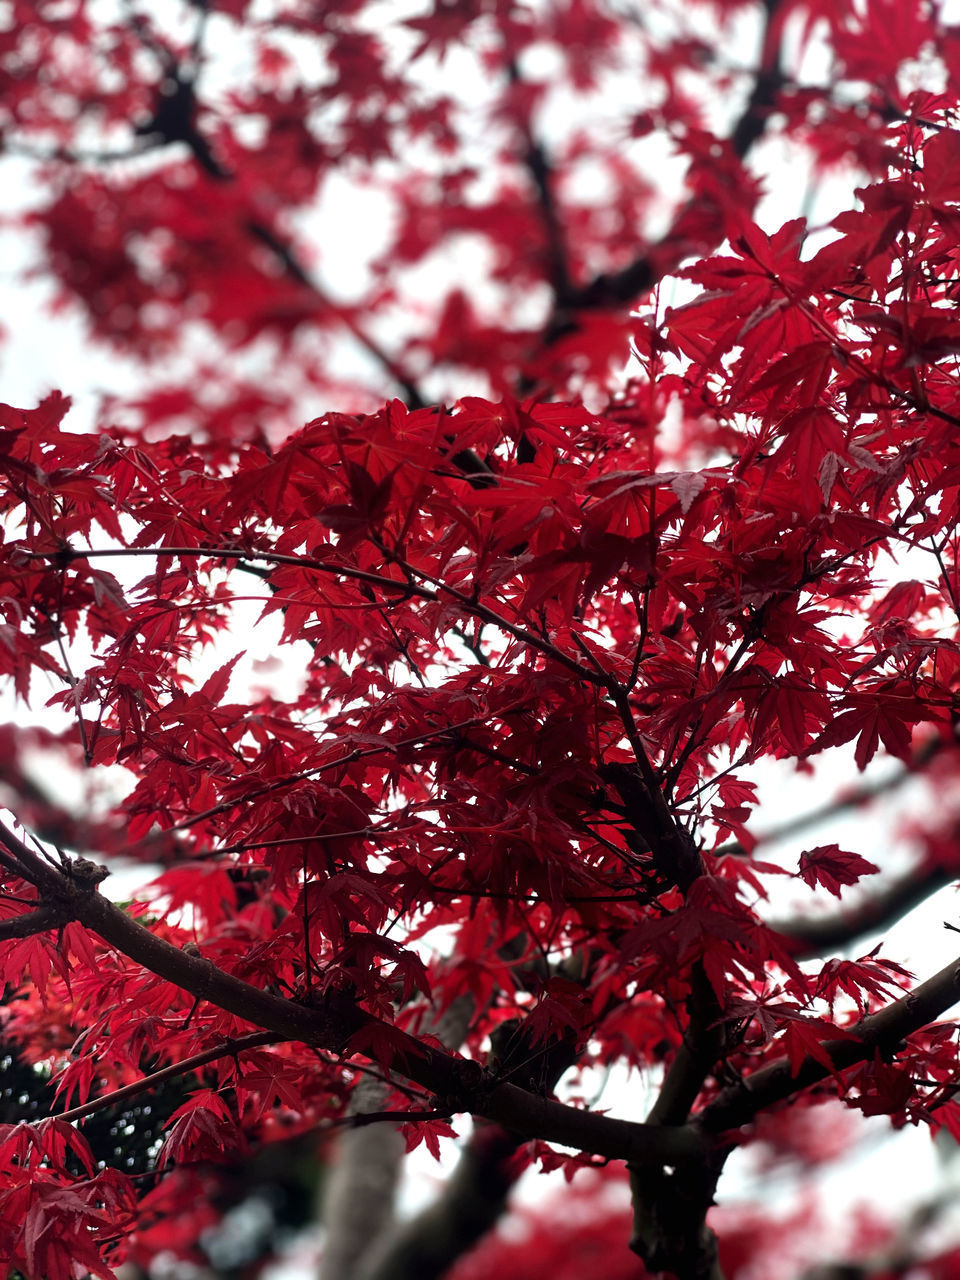 LOW ANGLE VIEW OF RED MAPLE TREE